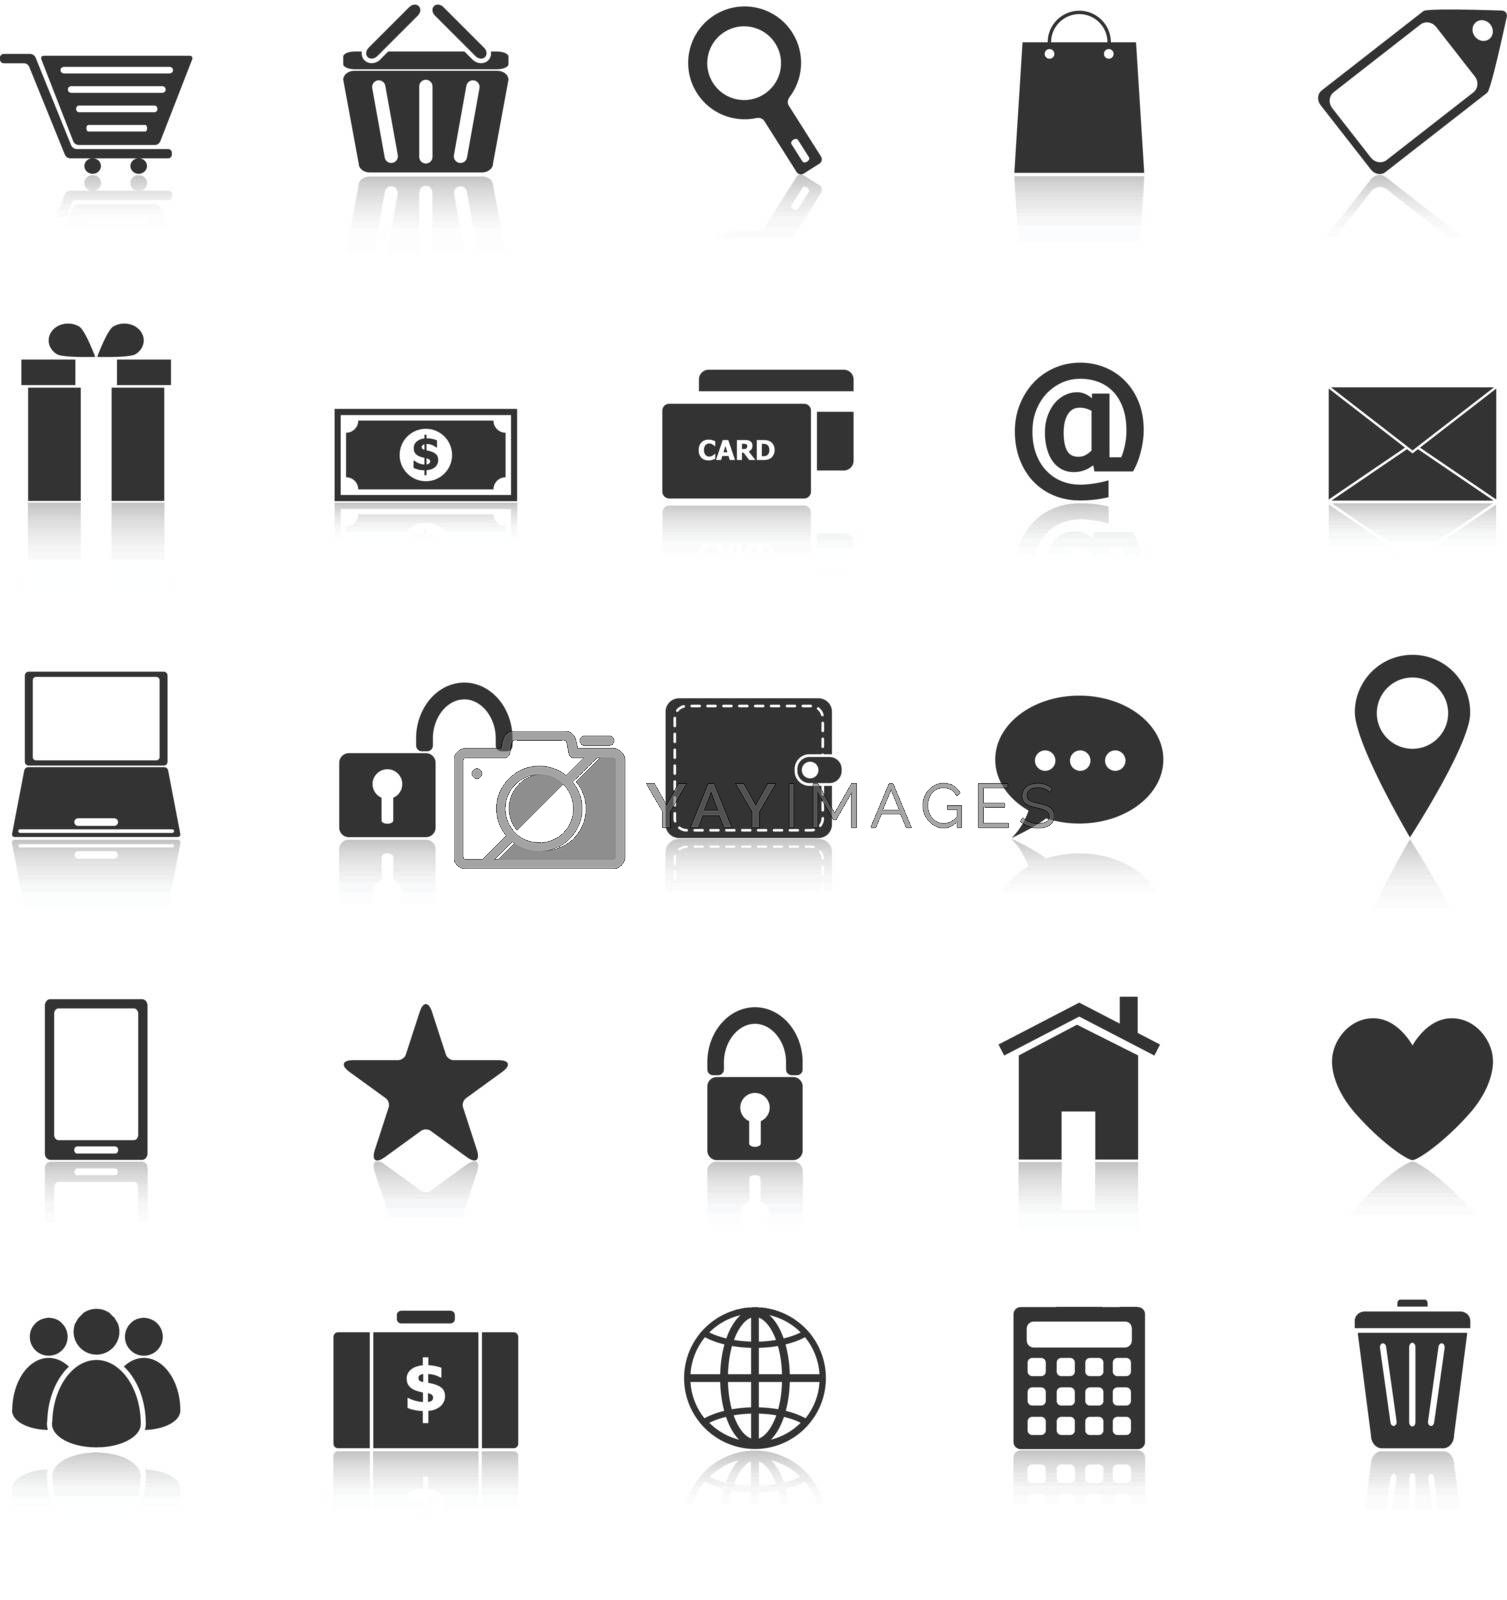 Ecommerce icons with reflect on white background, stock vector